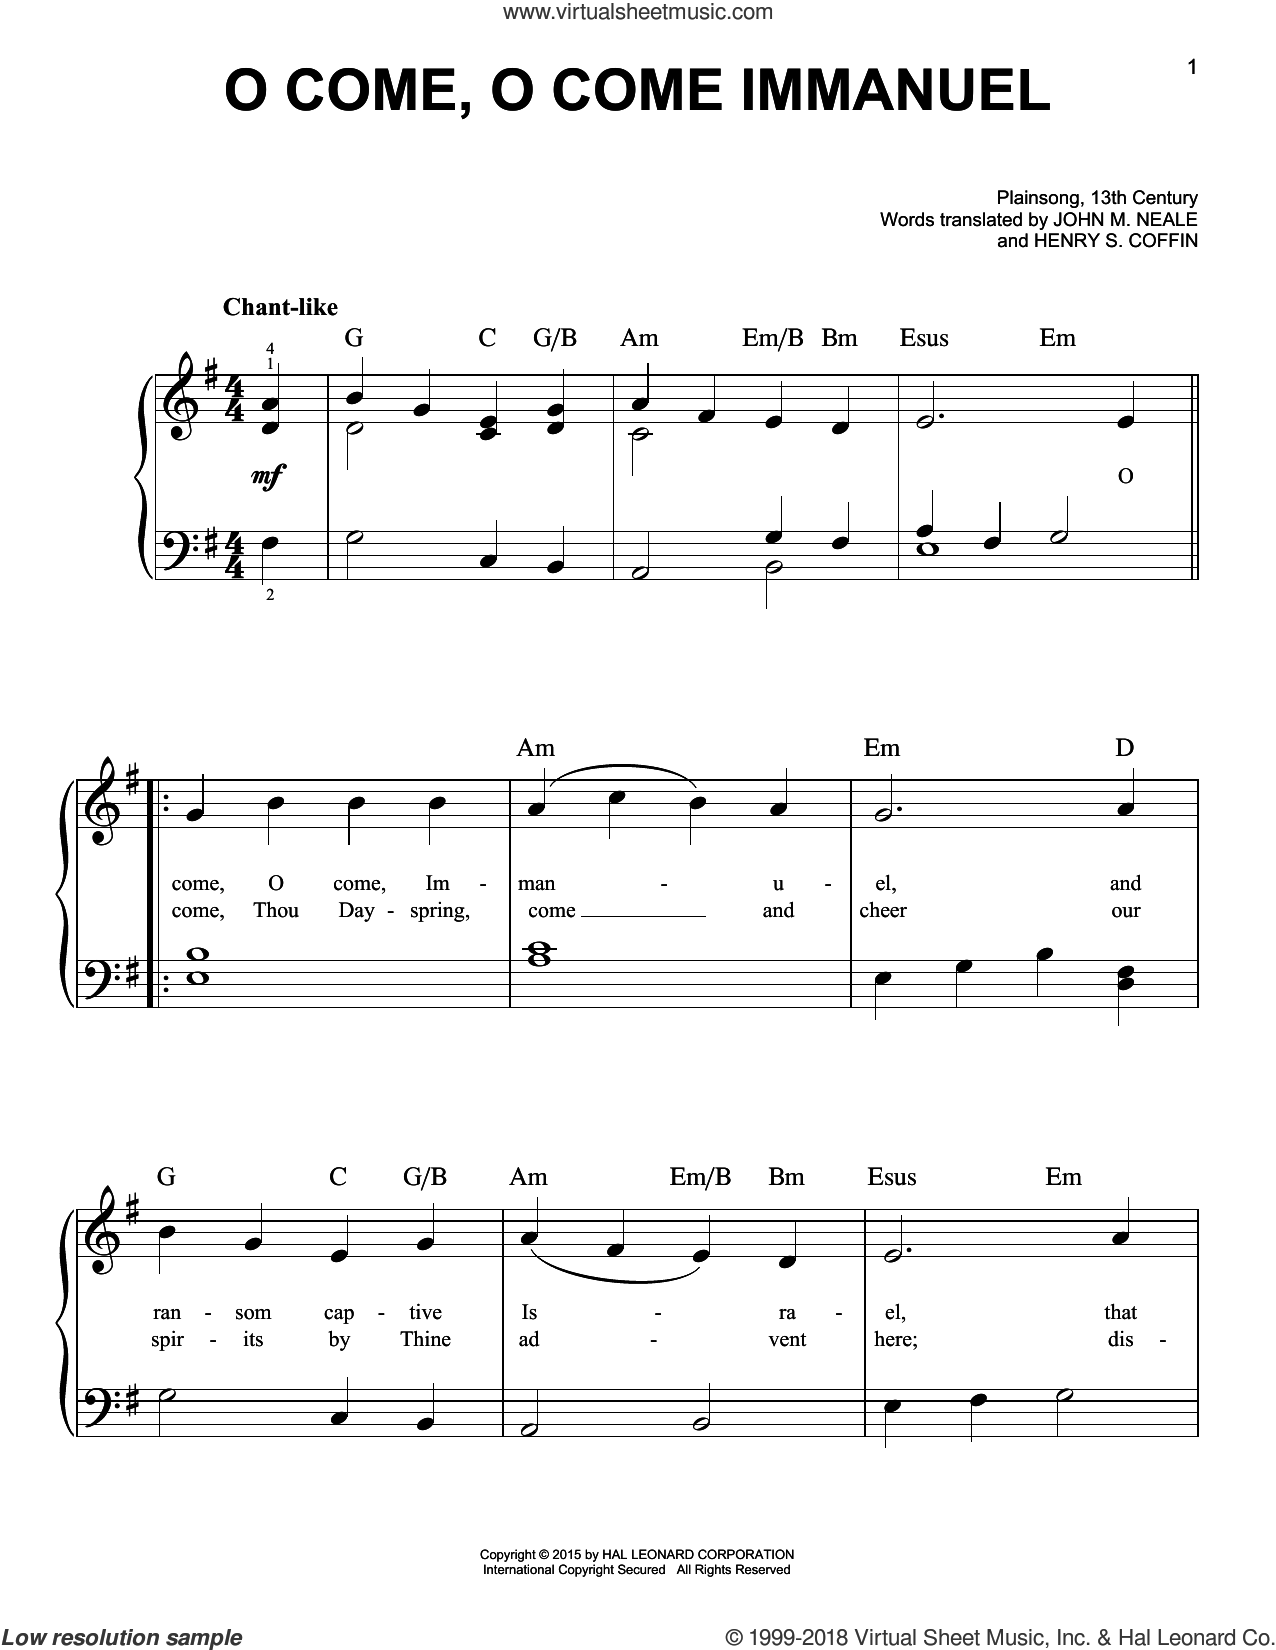 O Come, O Come Immanuel sheet music for piano solo by John Mason Neale, Henry S. Coffin and Plainsong, 13th Century, beginner skill level